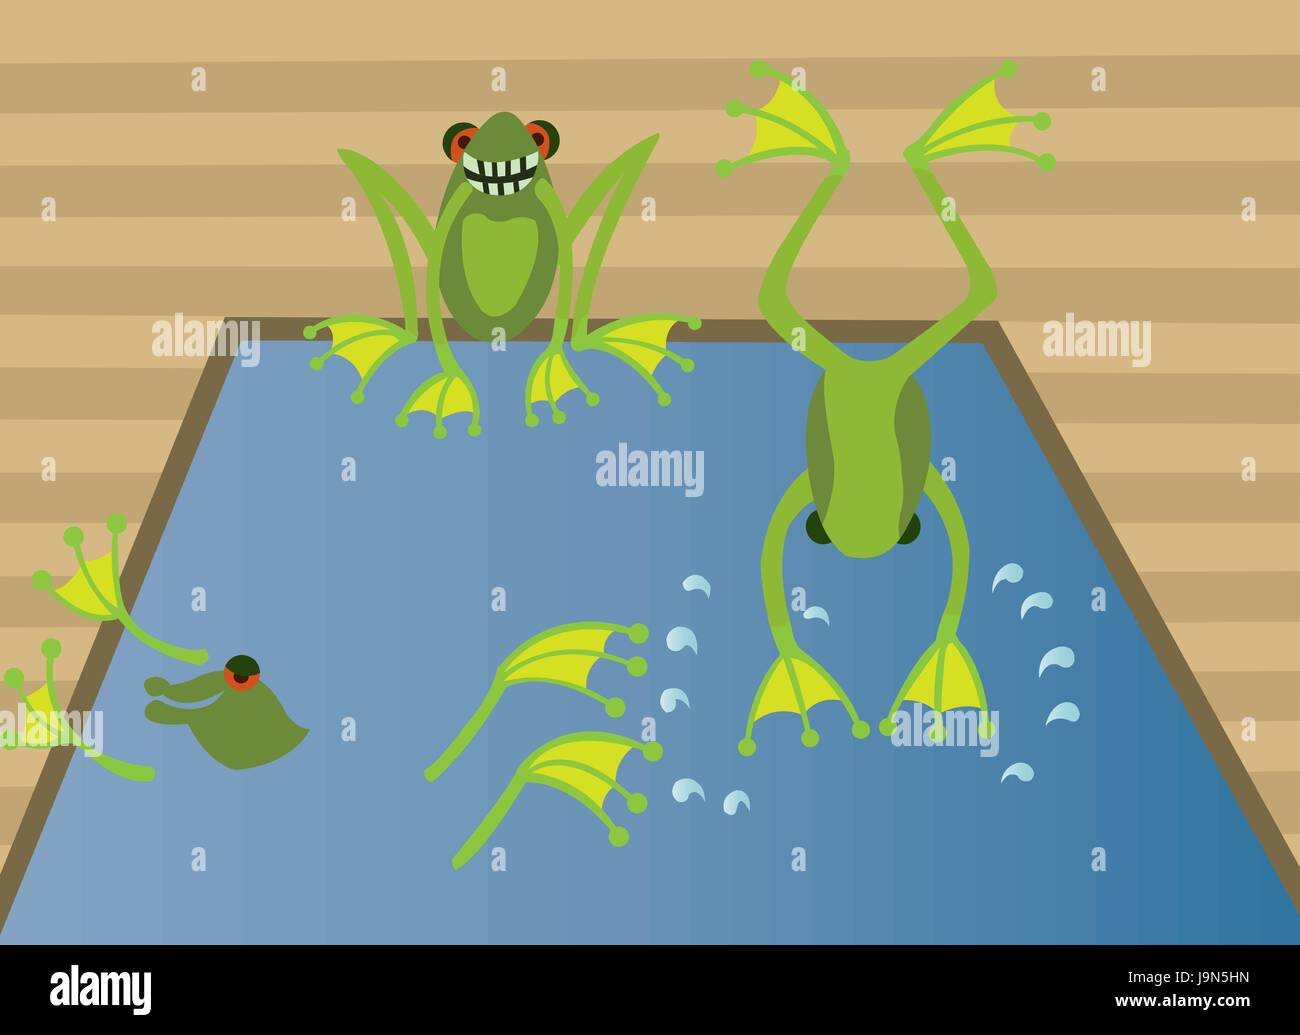 frogs enjoying themselves in a swimming pool - Stock Vector